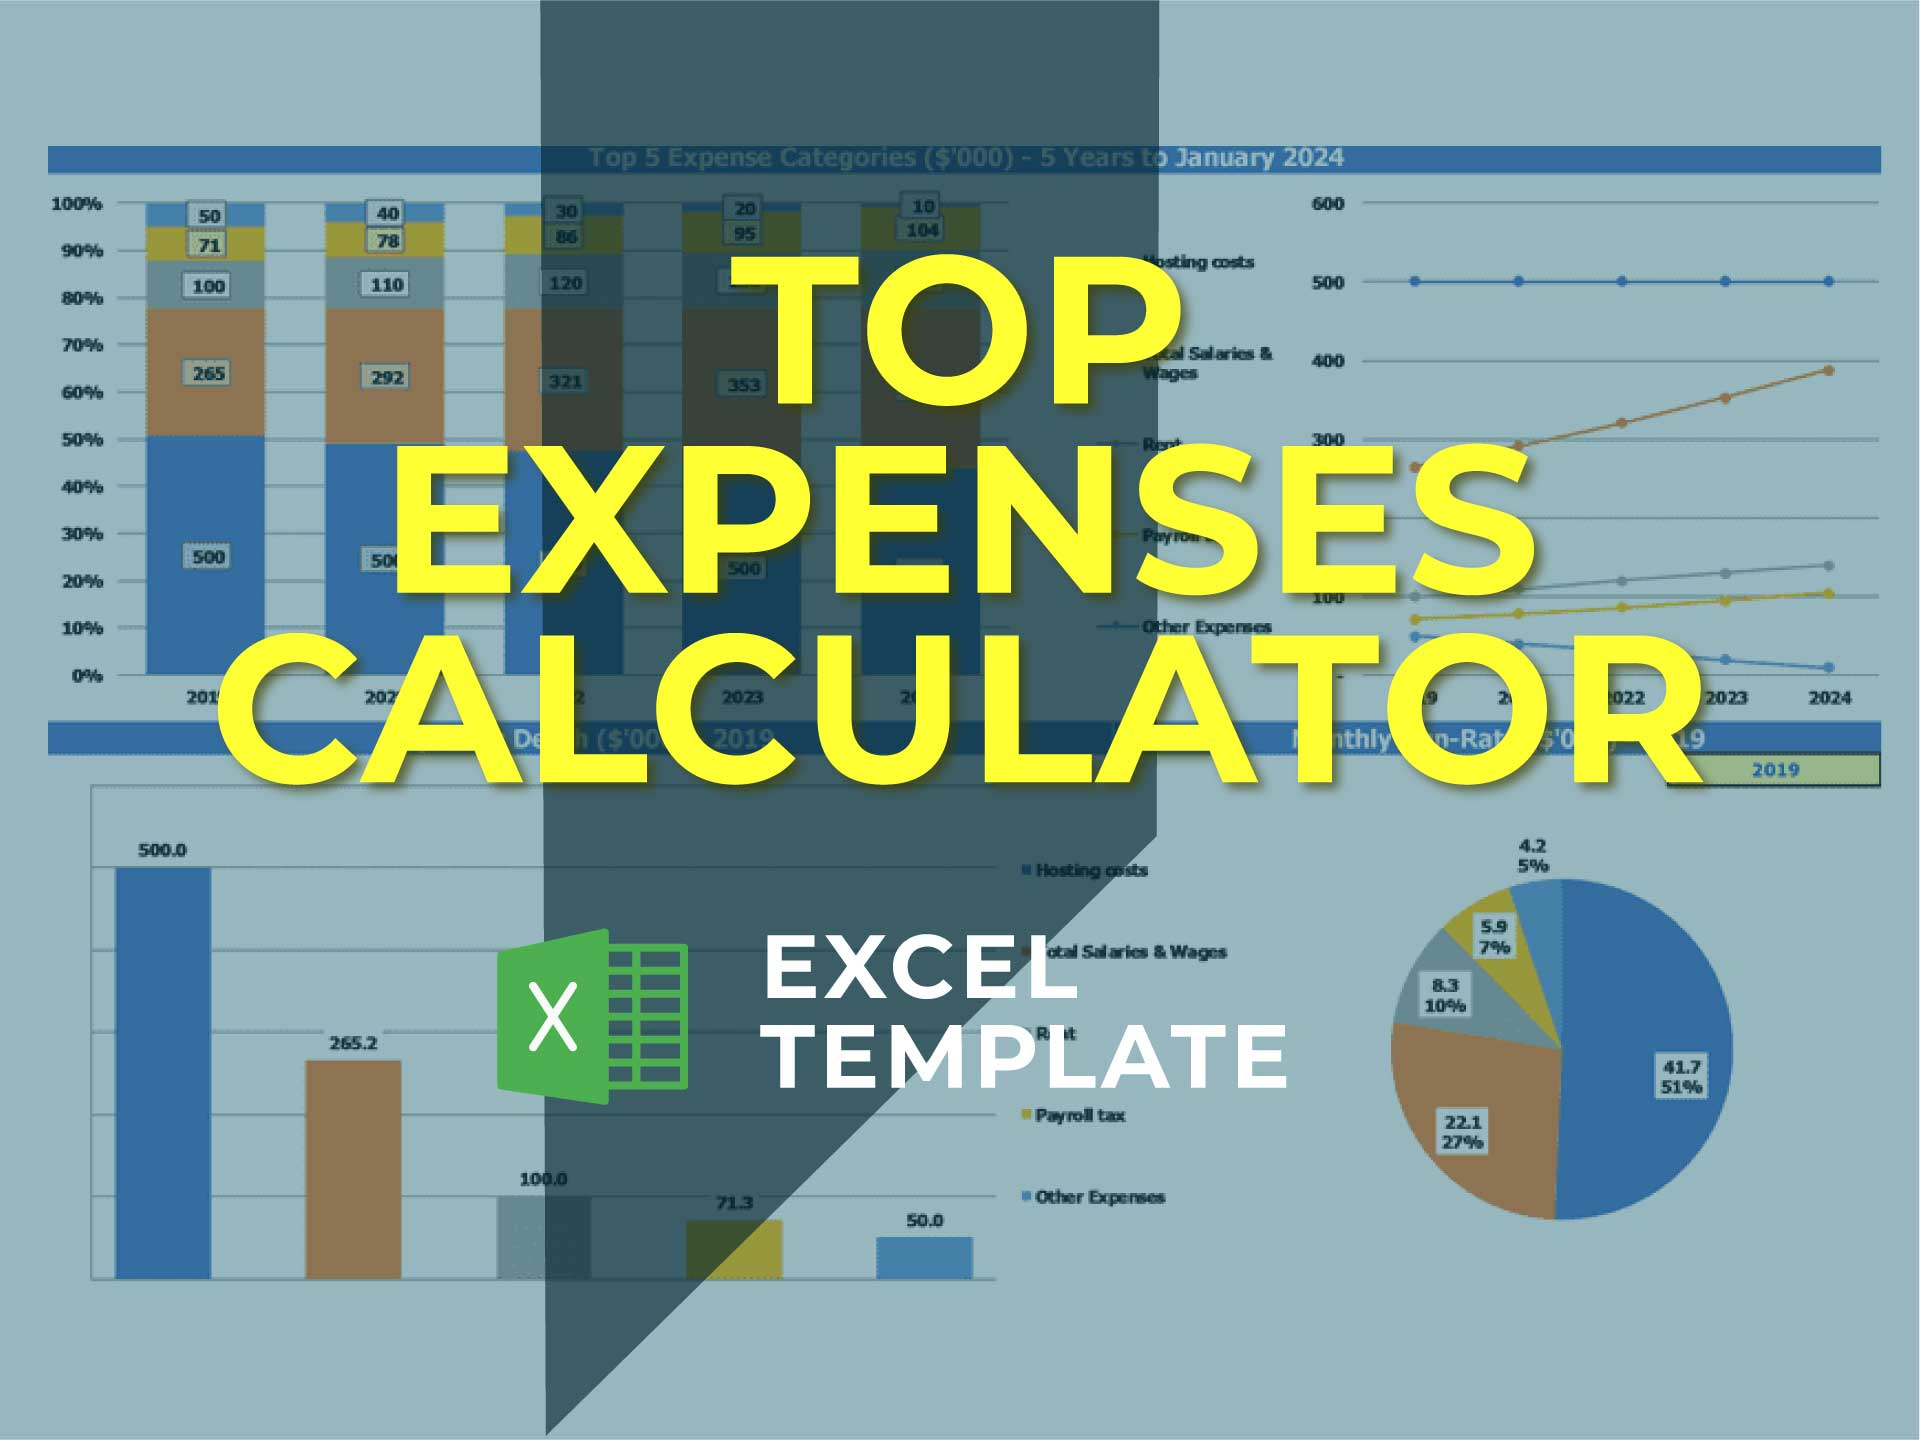 Top Expenses